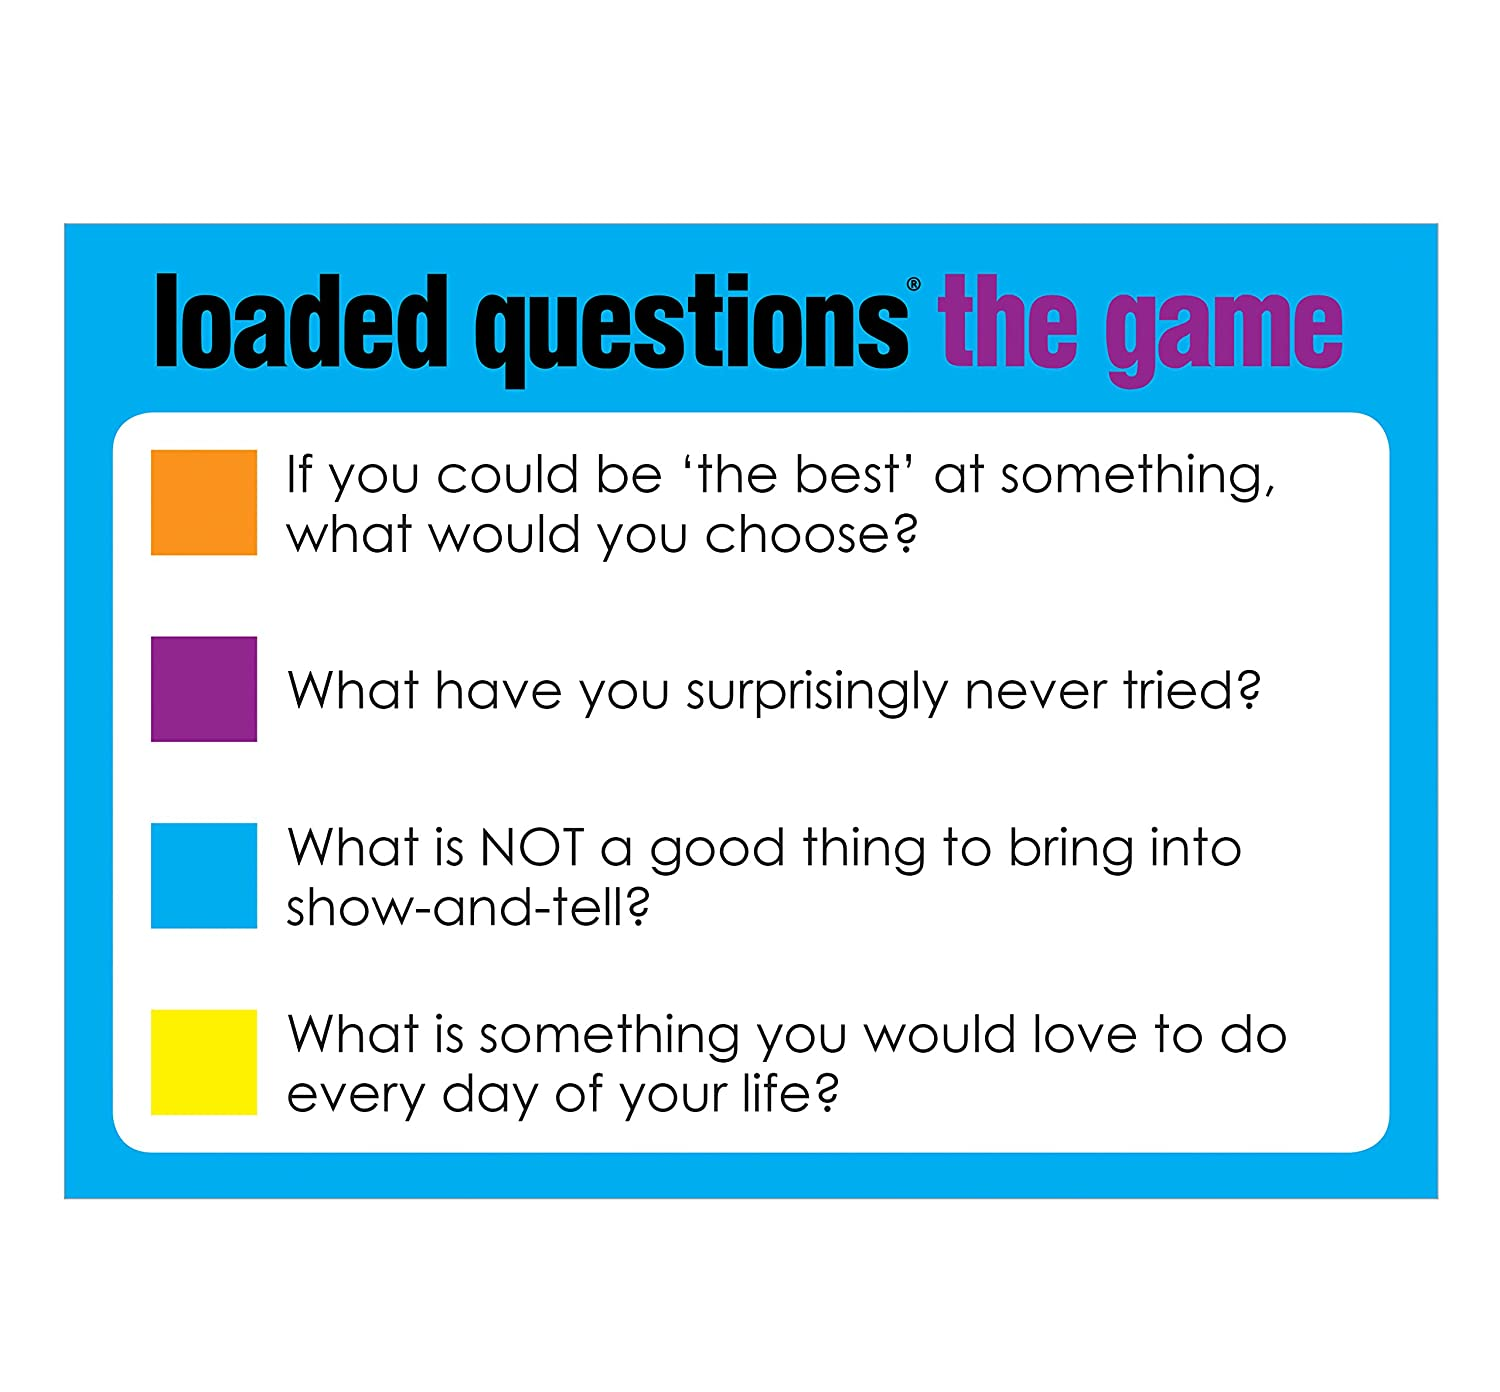 Amazon.com: All Things Equal, Inc. Loaded Questions - The Family/Friends  Version of the Classic Game of 'Who Said What': Toys & Games